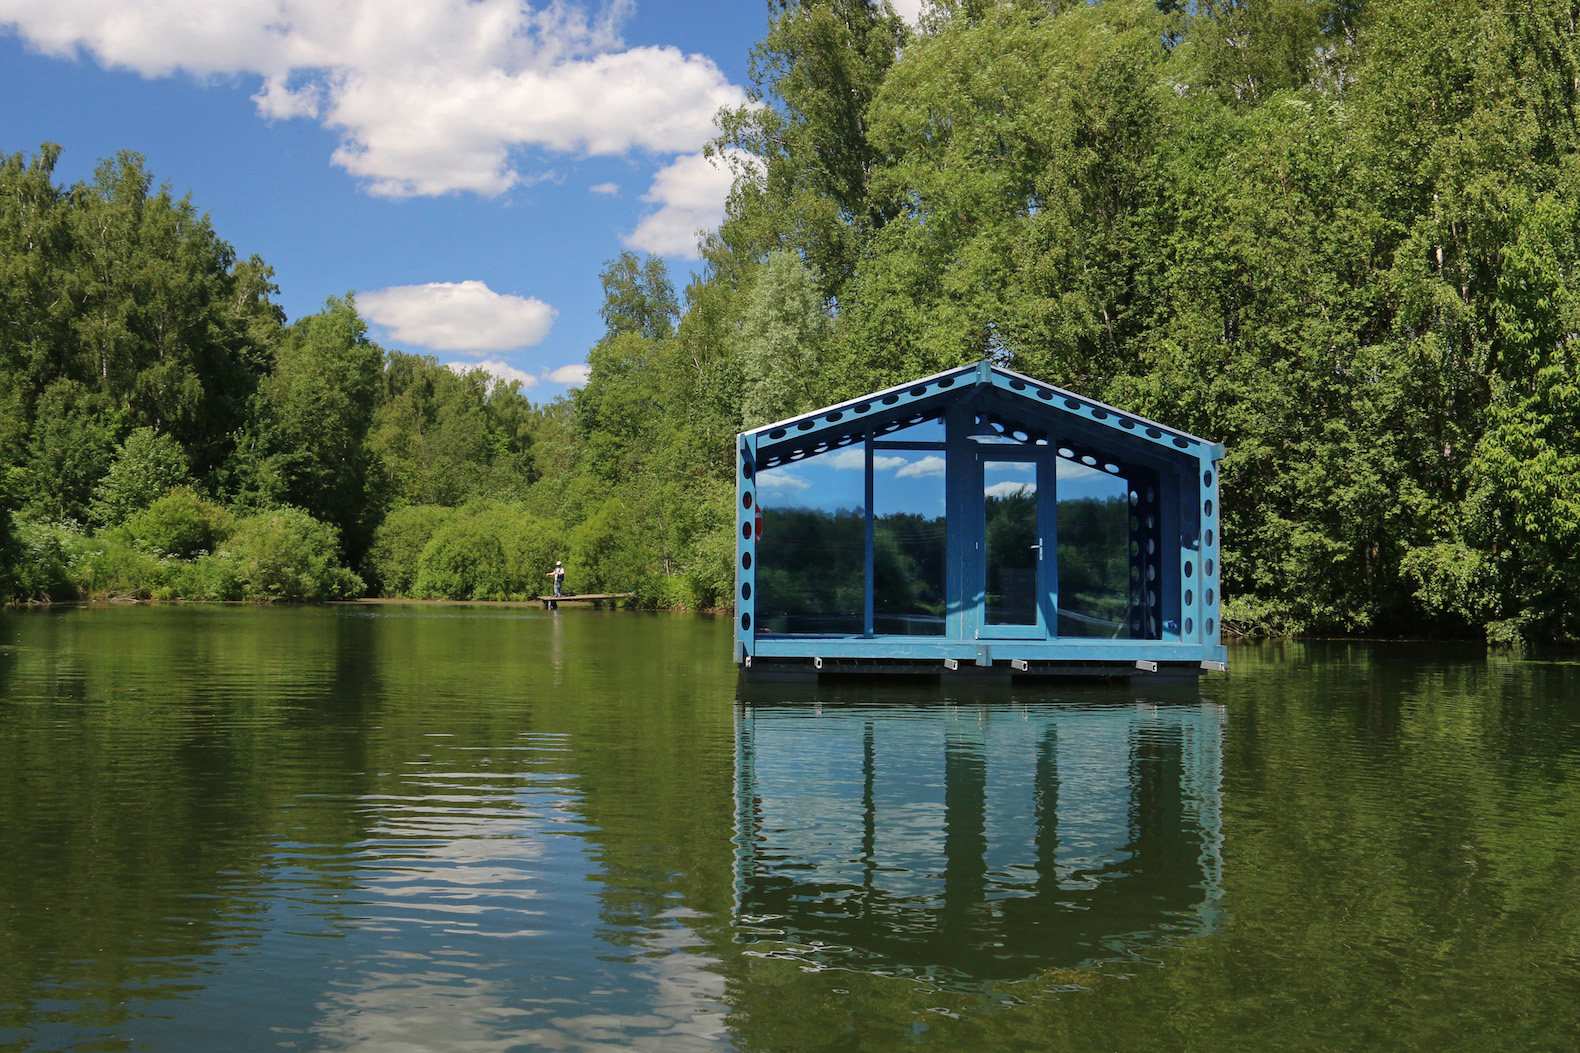 compact floating cabin pops up in extreme remote locations dd16 by bio architects inhabitat. Black Bedroom Furniture Sets. Home Design Ideas